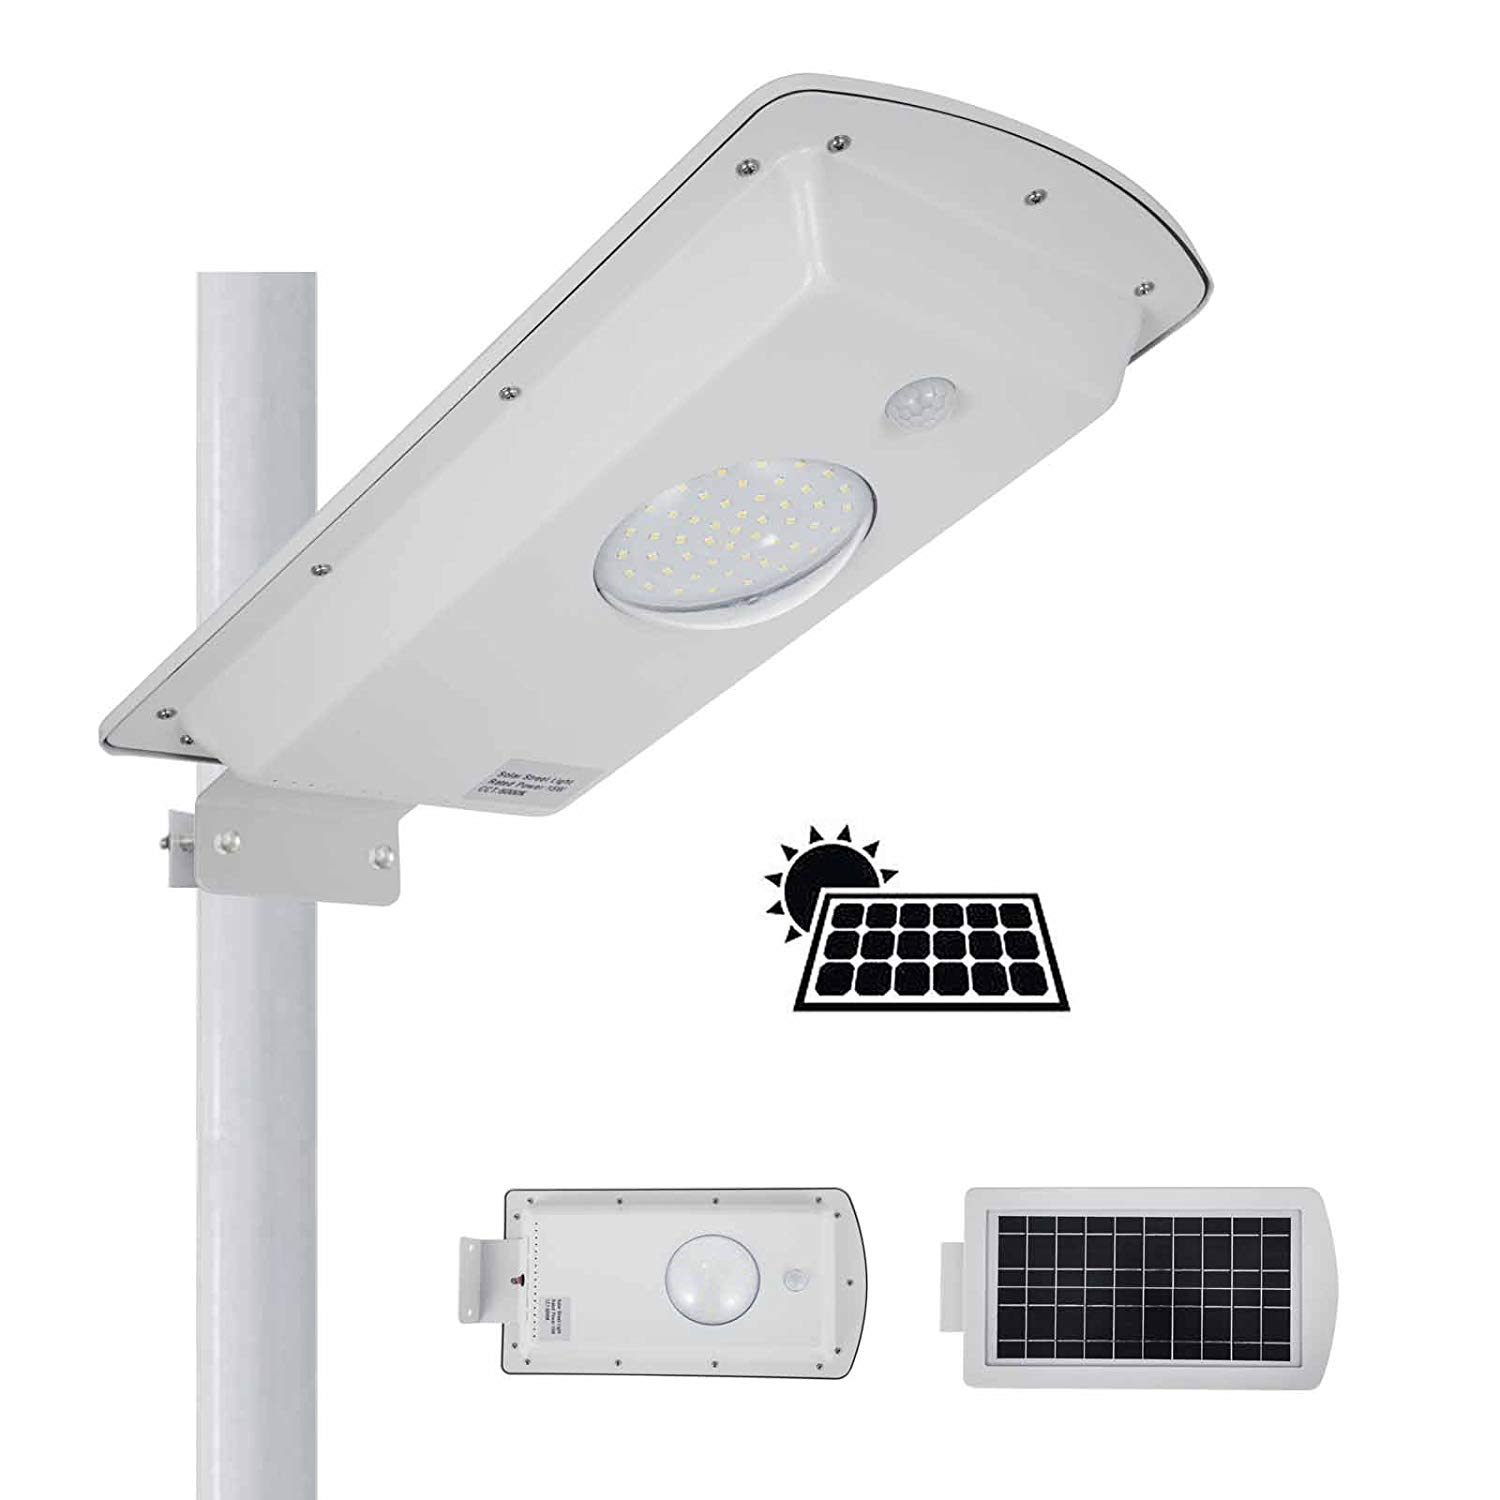 VEVOR Solar Street Light Outdoor 10W Solar LED Lights Outdoor 1000 Lumens Waterproof IP65 Solar Street Light CCT 6000K Solar Motion Sensor Light Outdoor Dusk to Dawn with 49 Pcs LED Lamp Beads (10W)